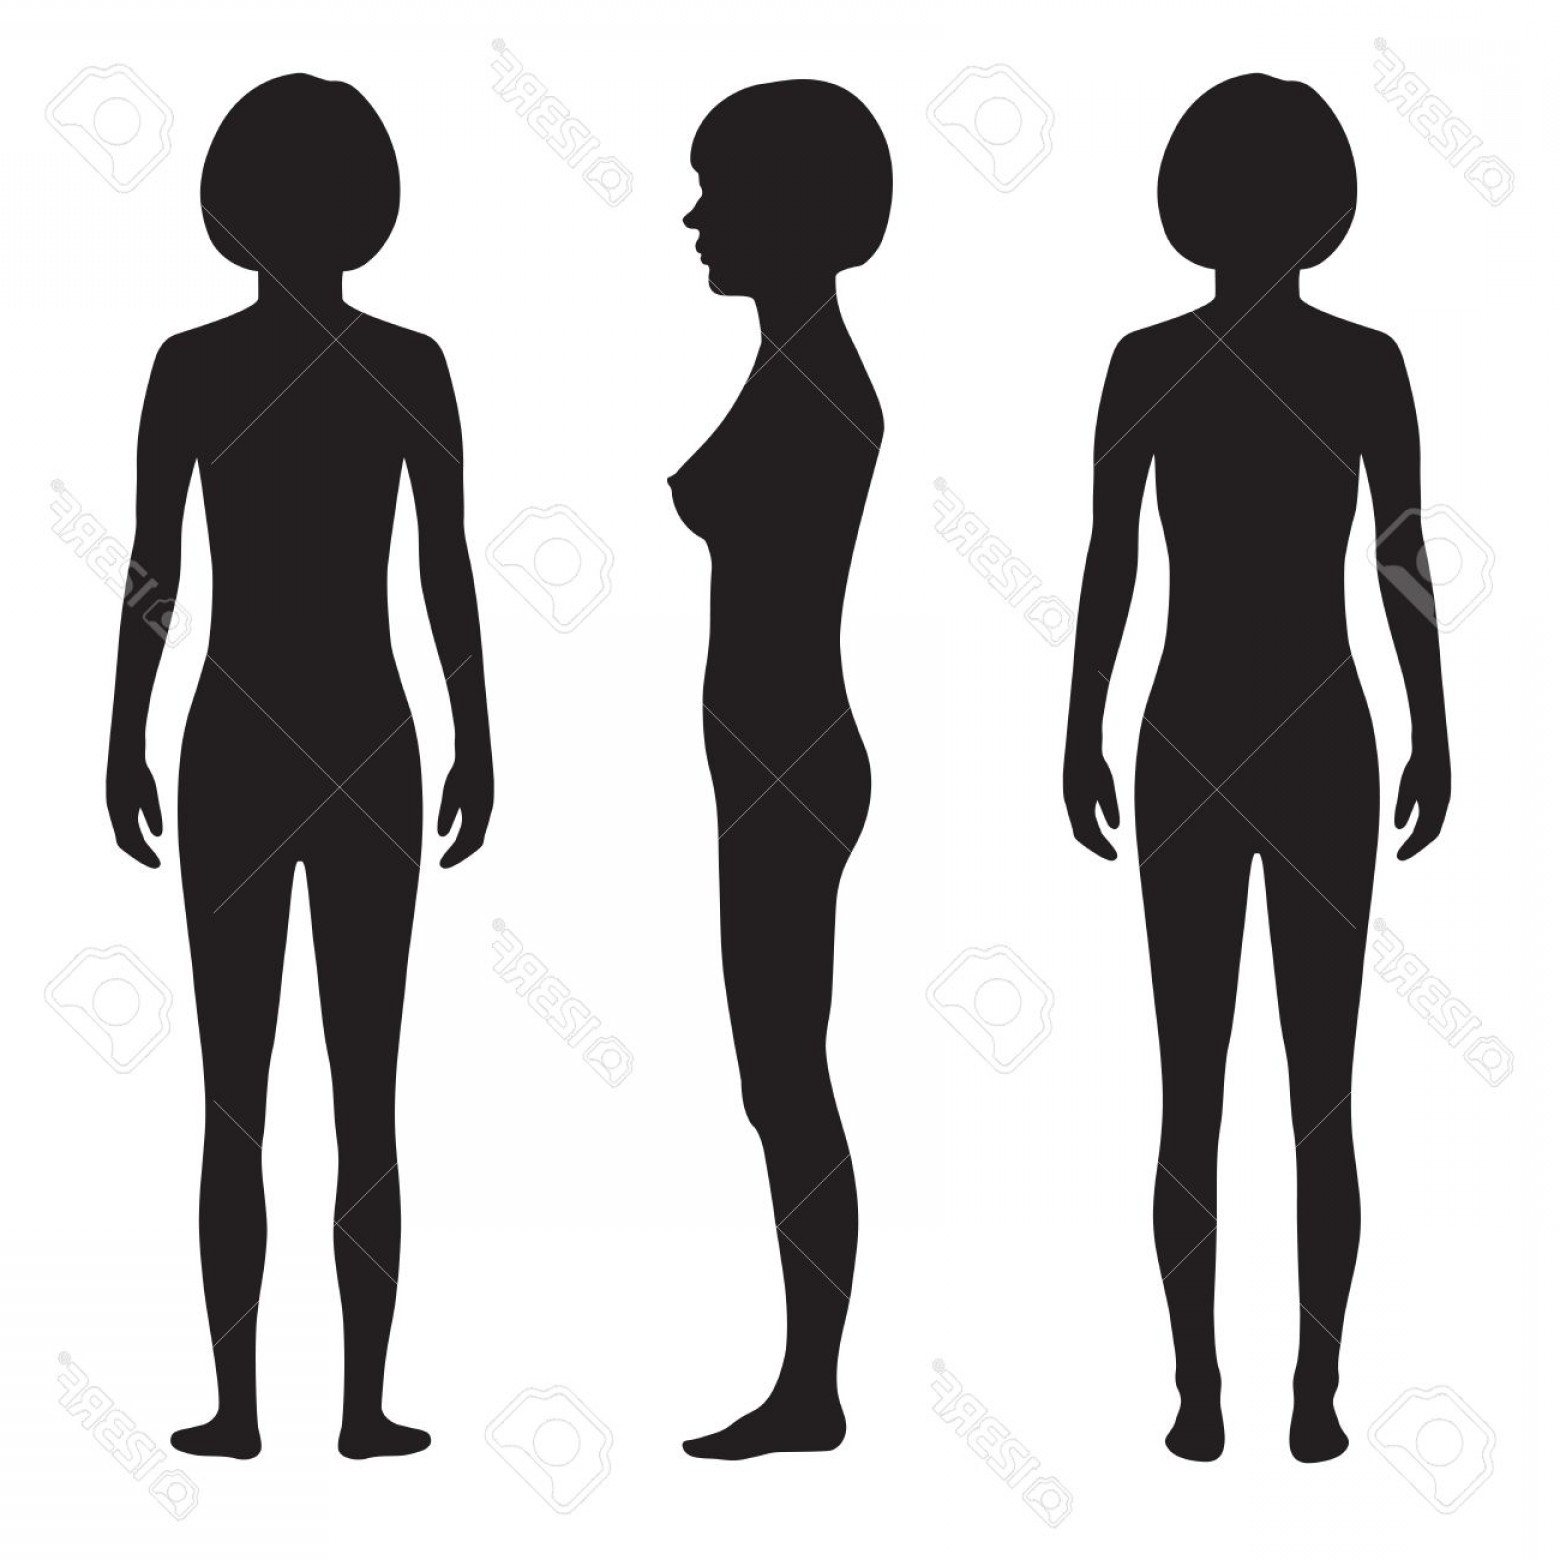 Male Human Vector: Photostock Vector Human Body Anatomy Front Back Side Vector Woman Silhouette